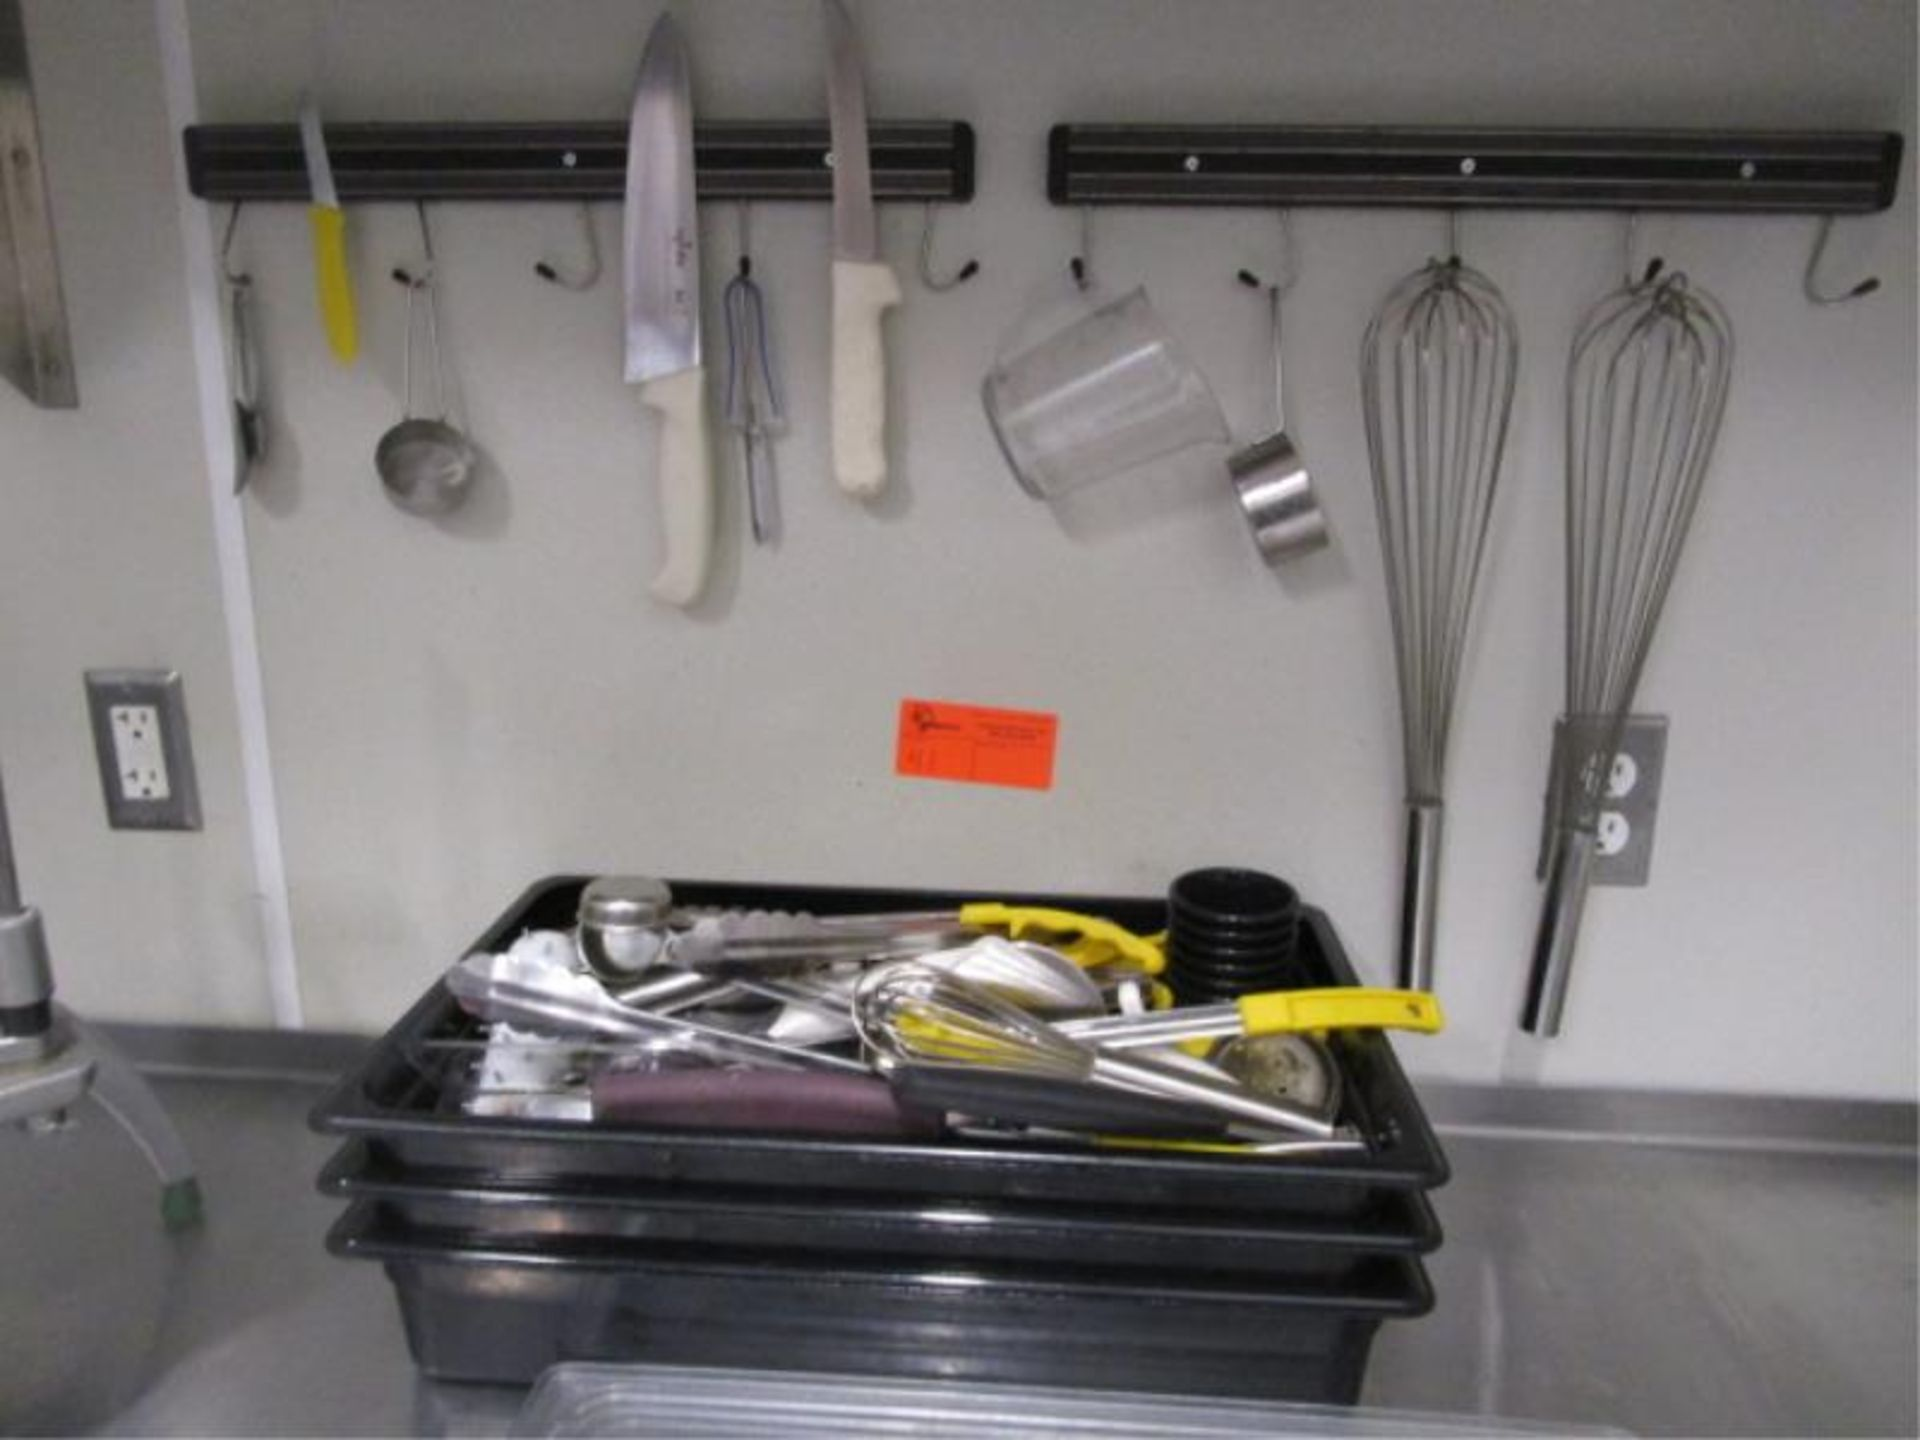 Lot 41 - (2) Magnetic Knife Rails, Whisks, (3) Plastic Containers & Lot Of Smallwares